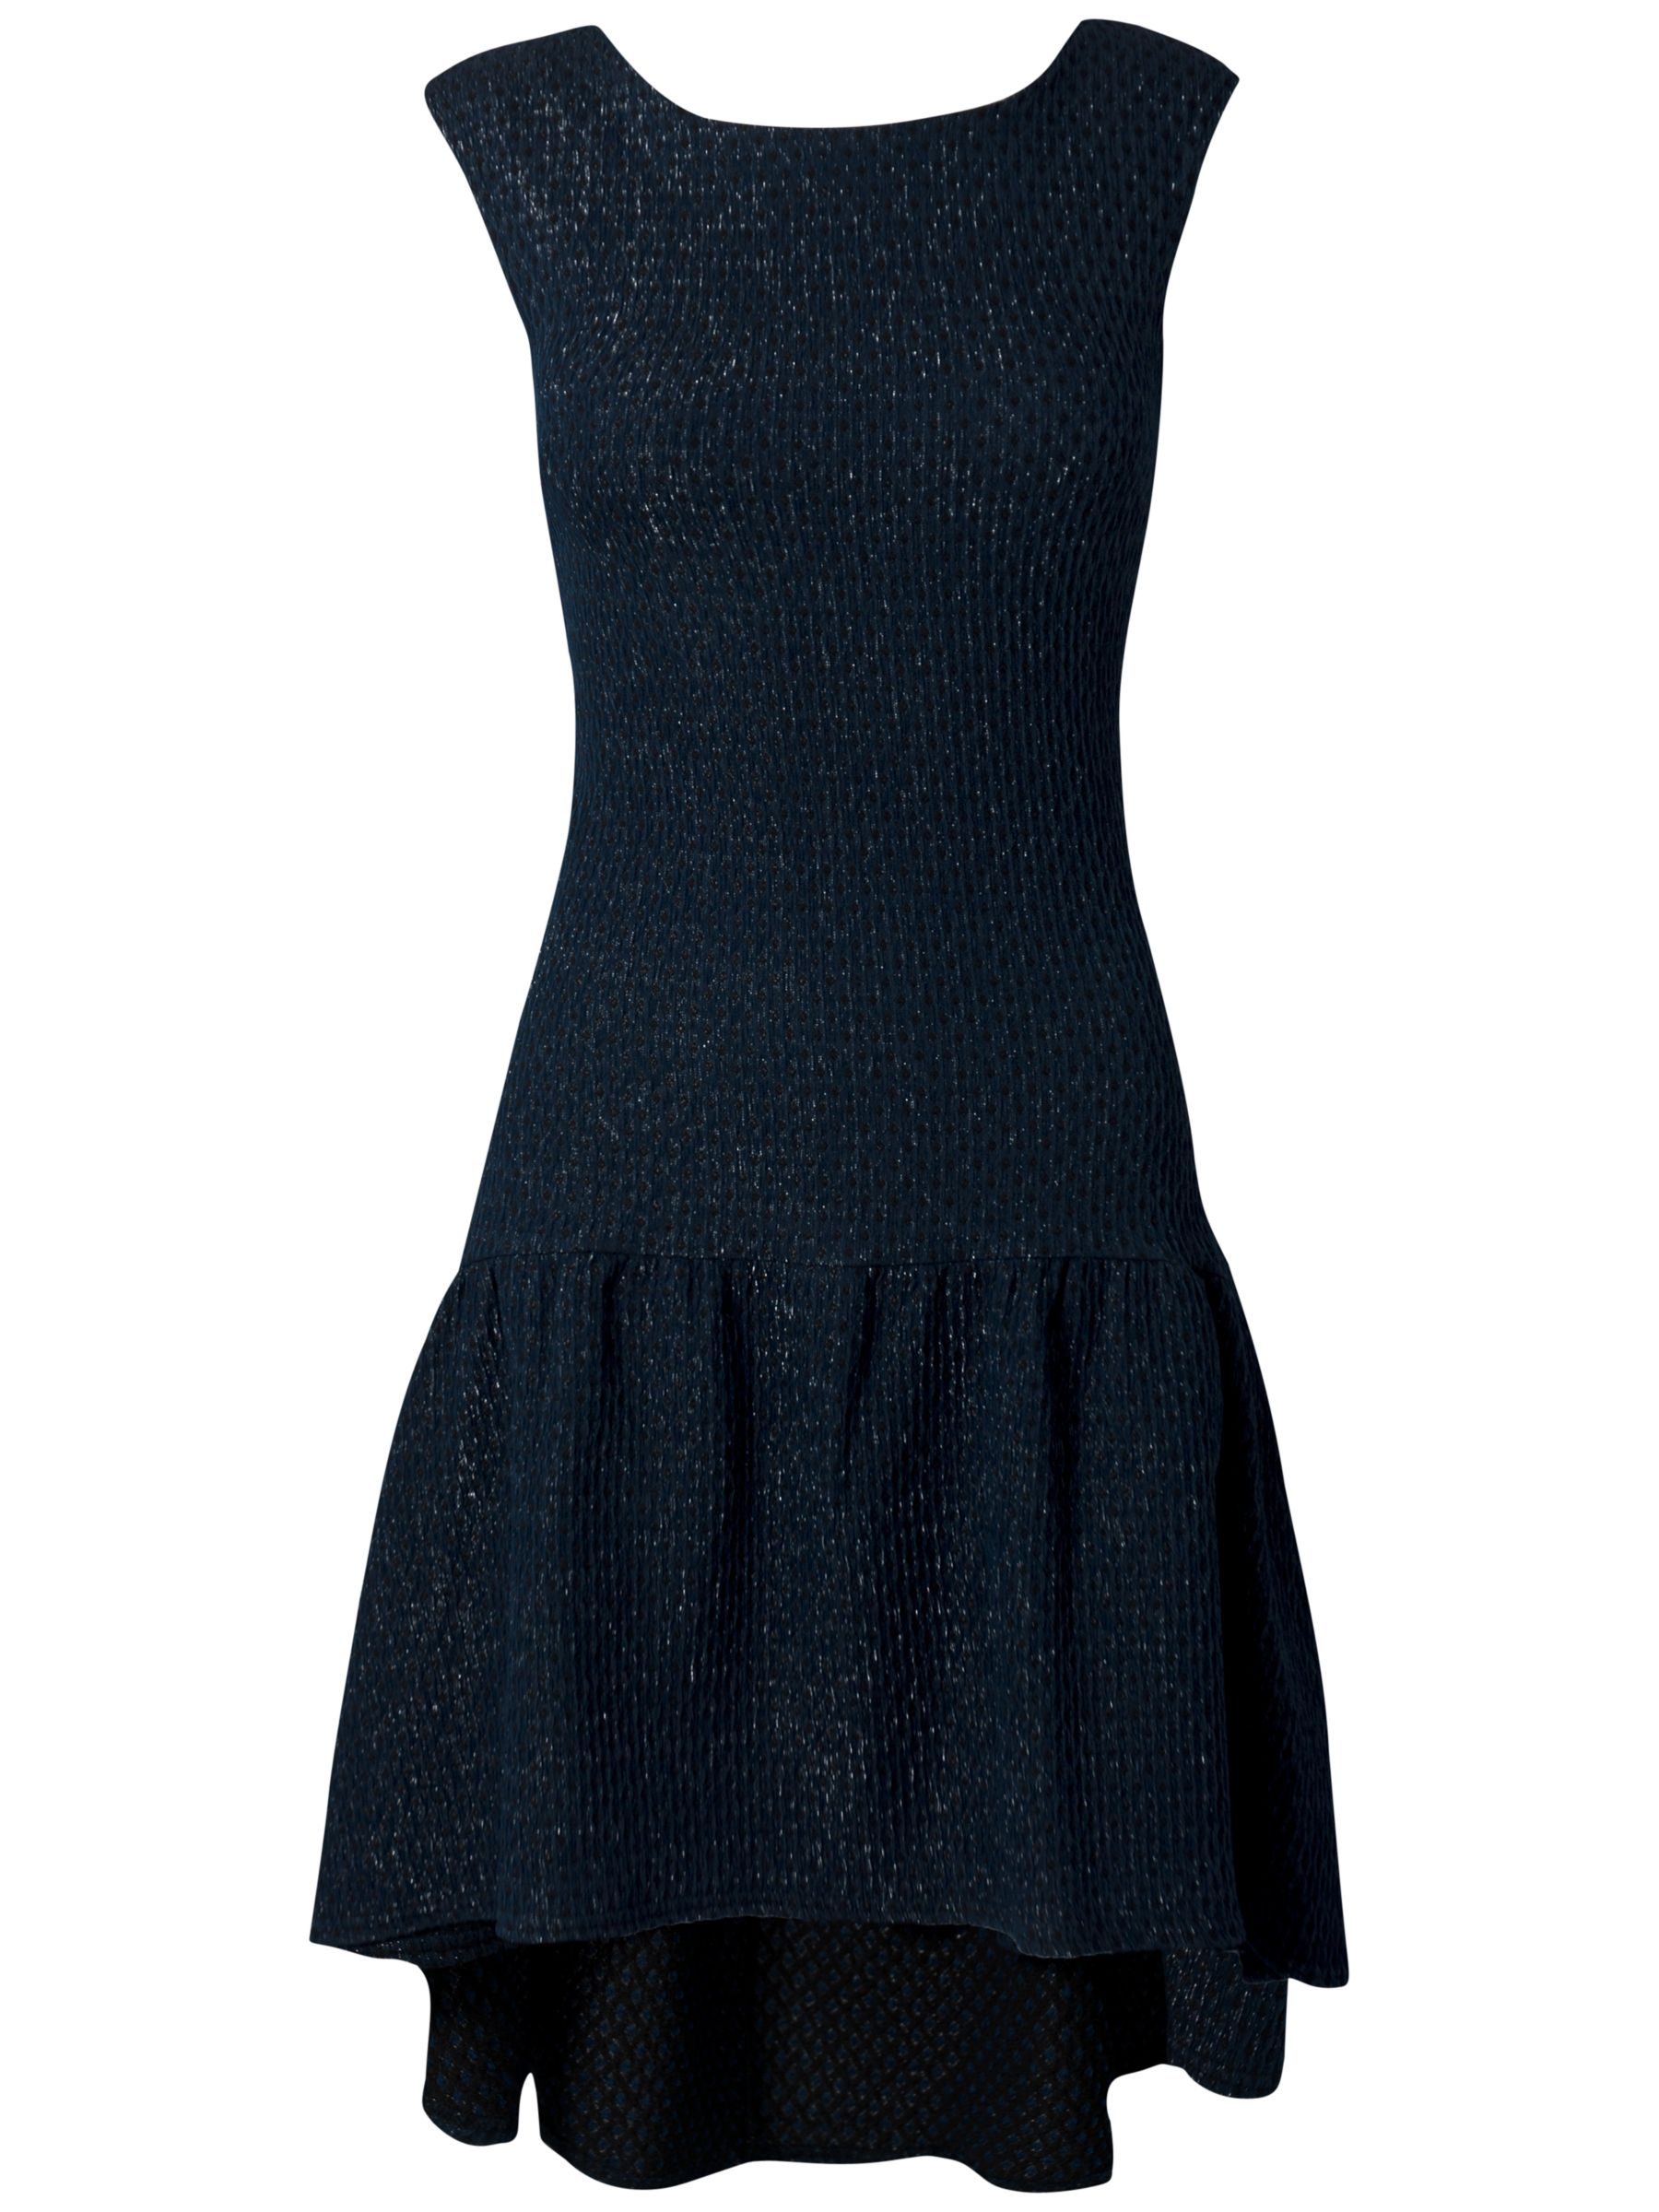 almari lurex pephem dress navy, almari, lurex, pephem, dress, navy, 10|8, women, womens dresses, special offers, womenswear offers, womens dresses offers, 1407502